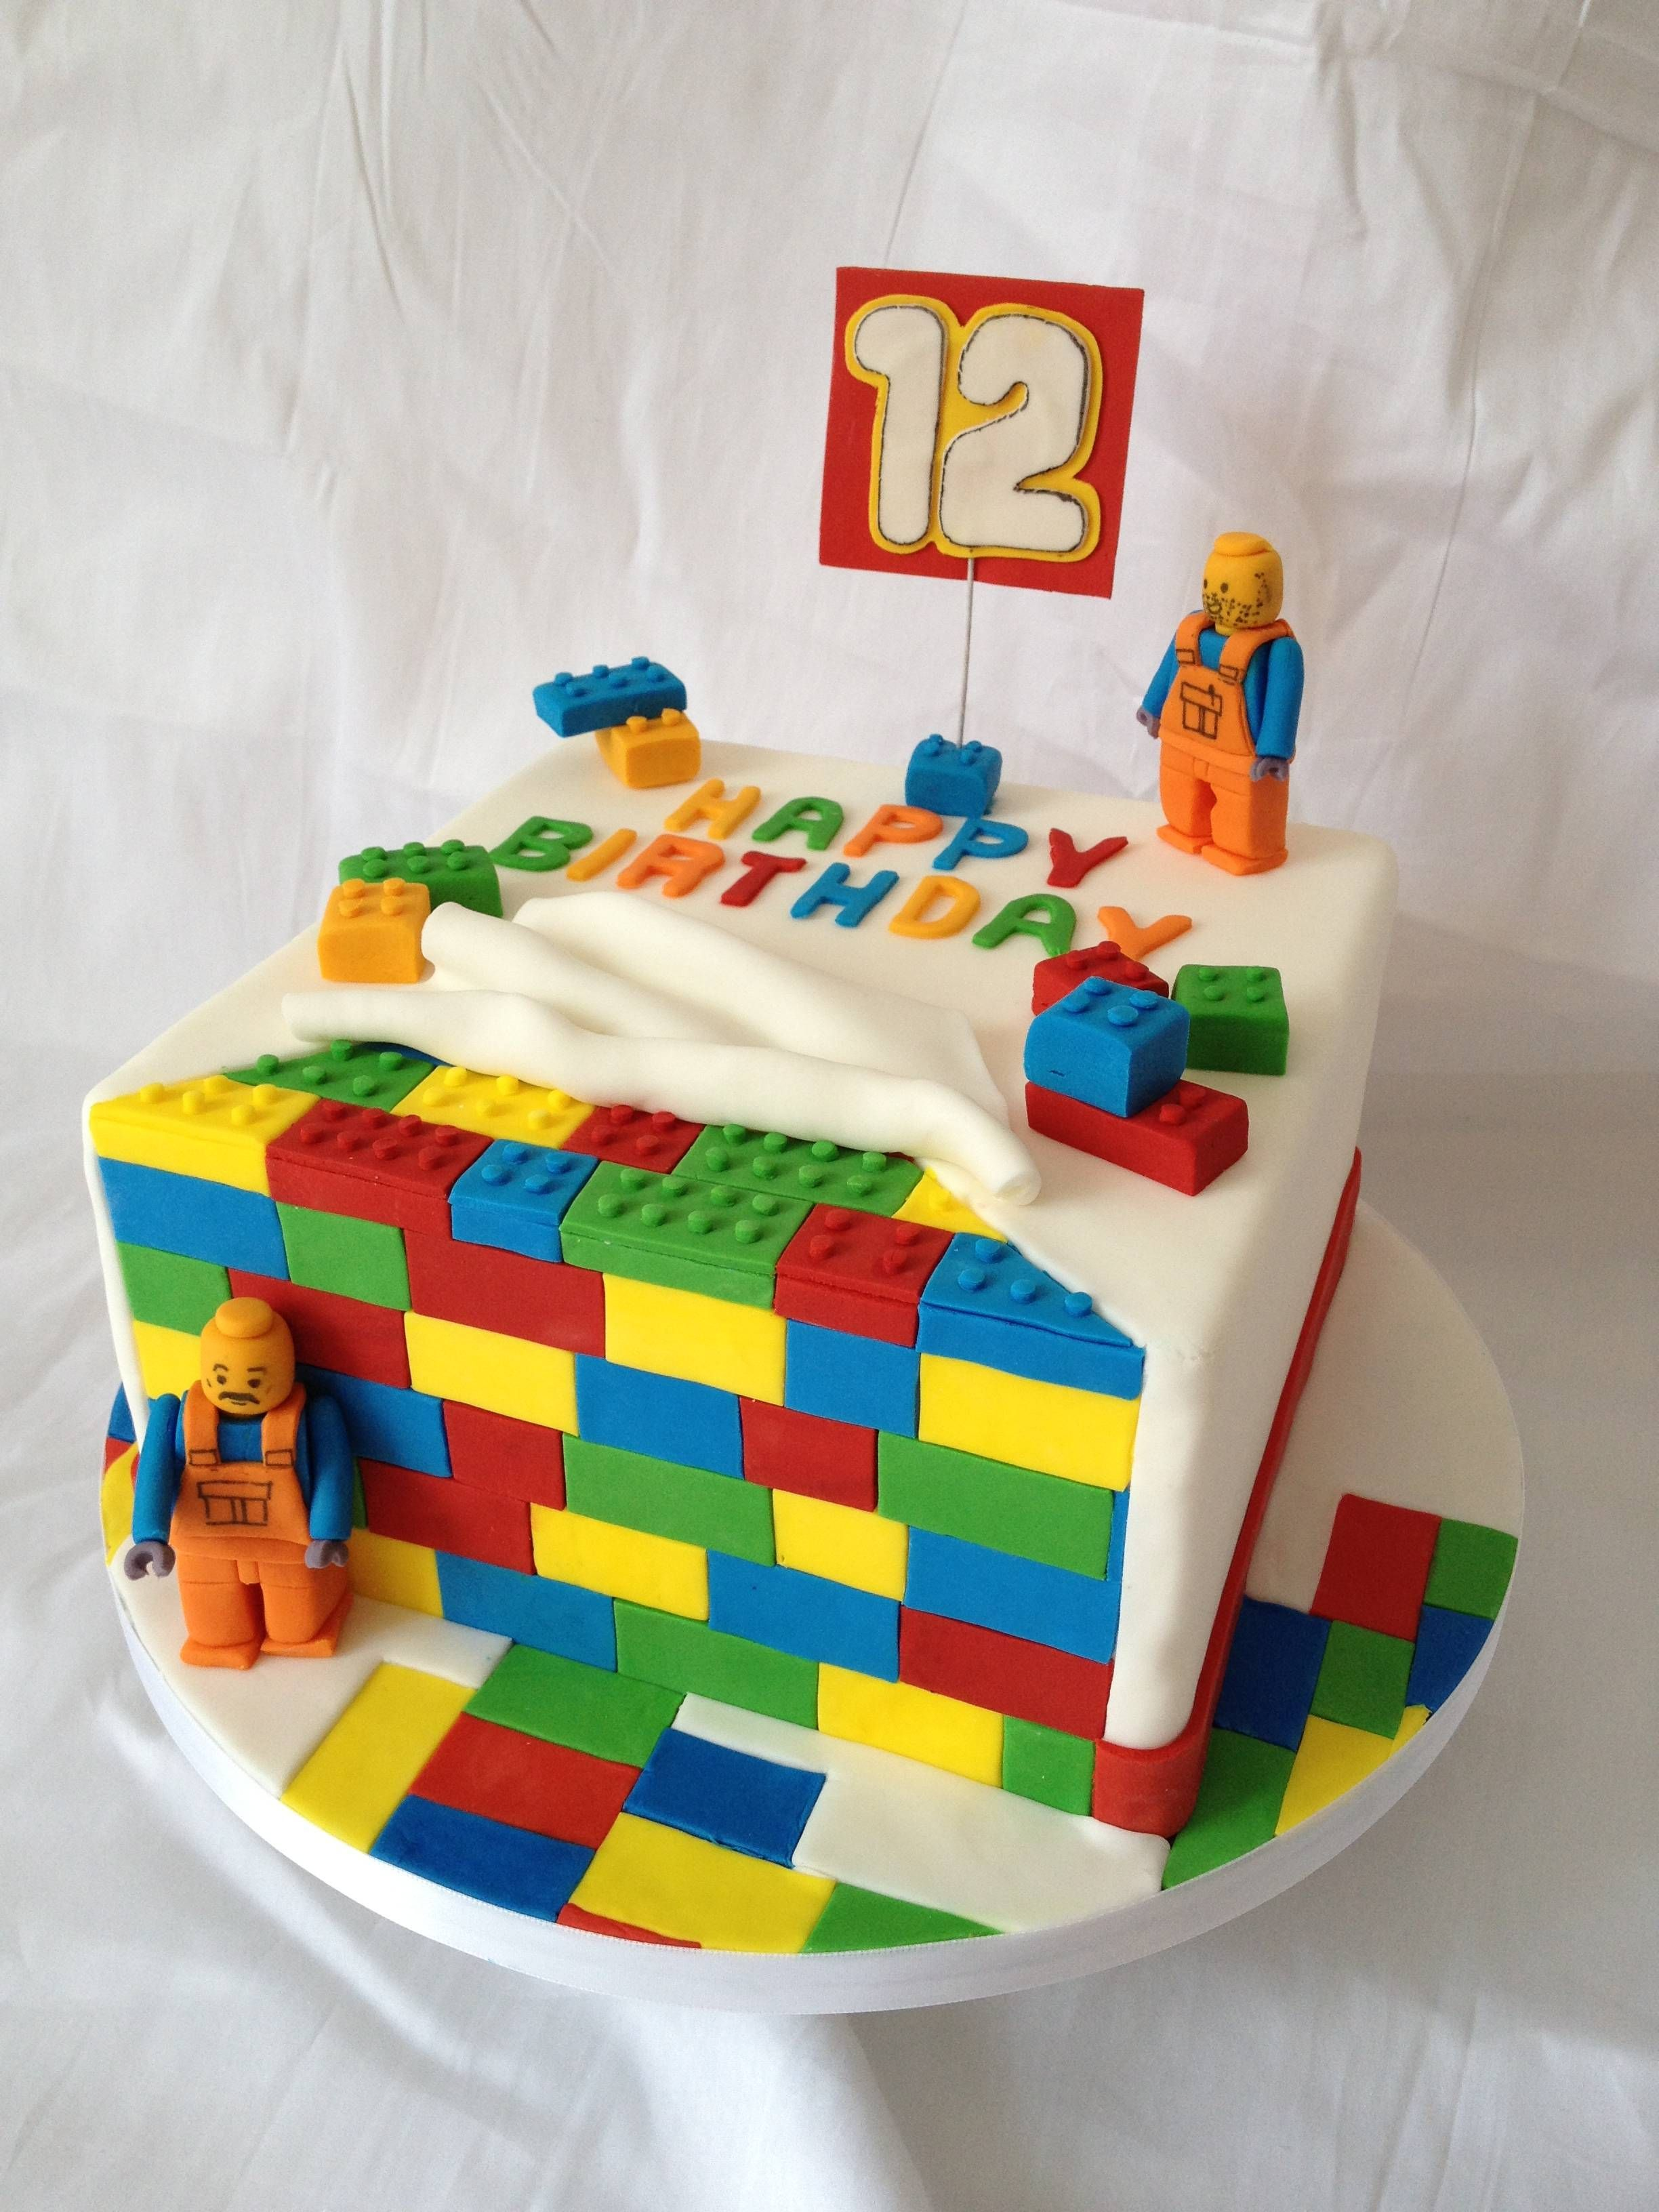 Incredible Made A Lego Cake This Weekend Lego Birthday Cake Funny Birthday Cards Online Barepcheapnameinfo